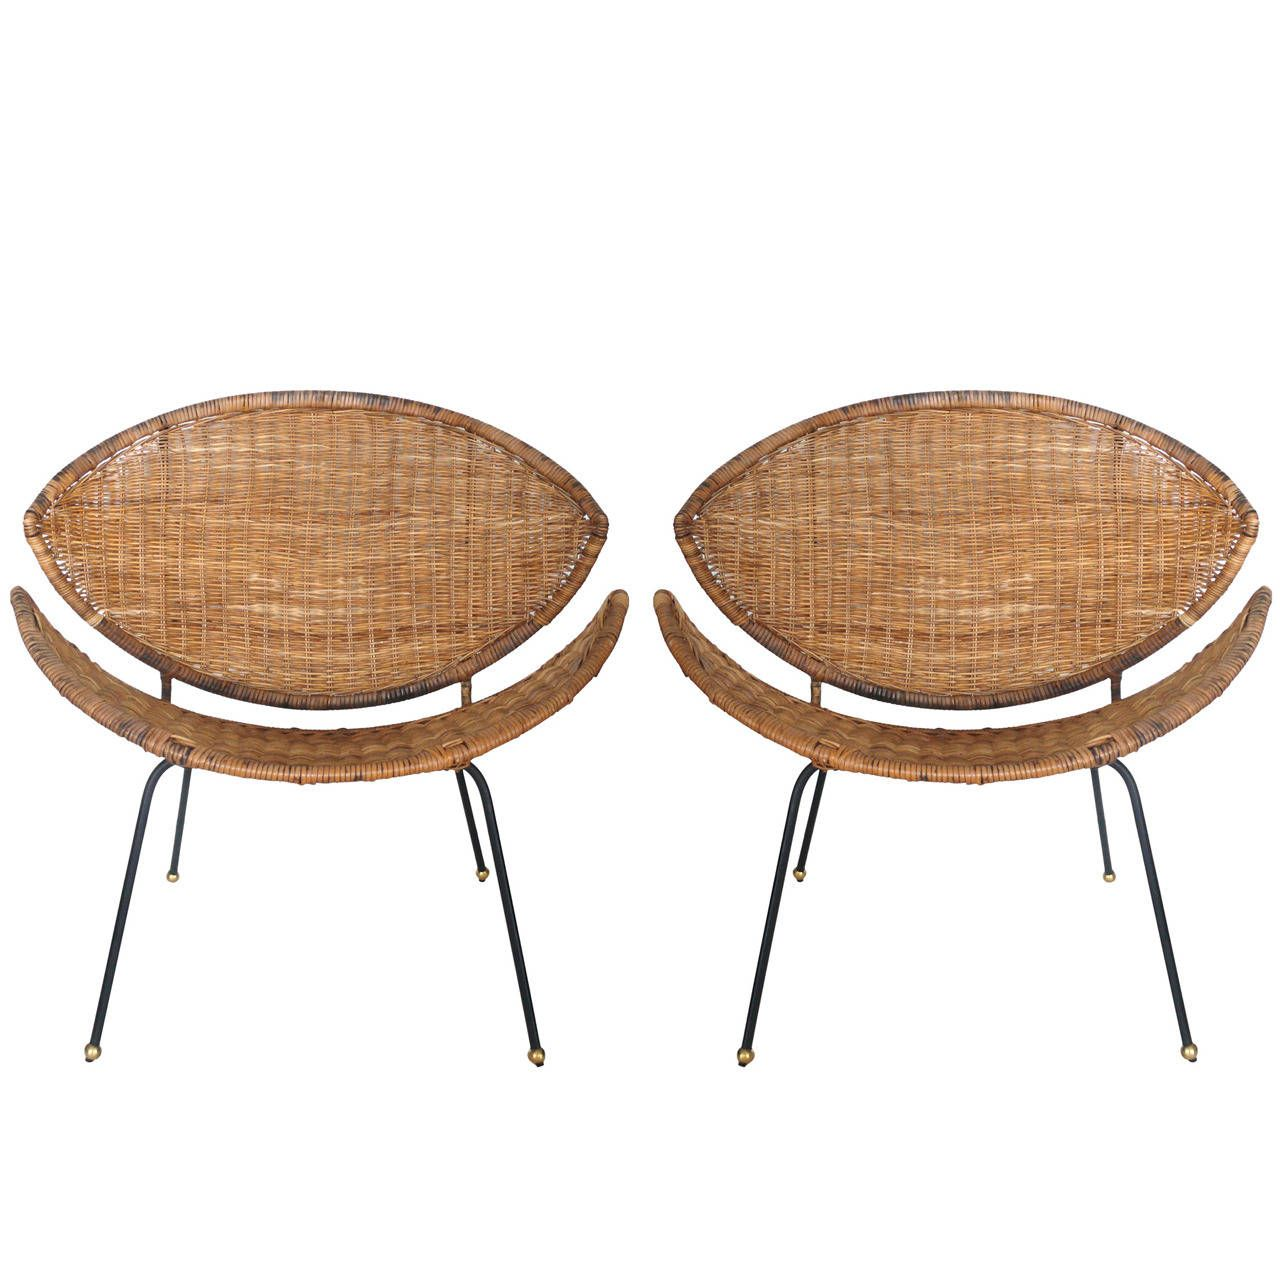 View This Item And Discover Similar Side Chairs For Sale At   Fantastic  Pair Of Sculptural Wicker And Rattan Clam Chairs. Chairs Have An Iron Frame  And ...